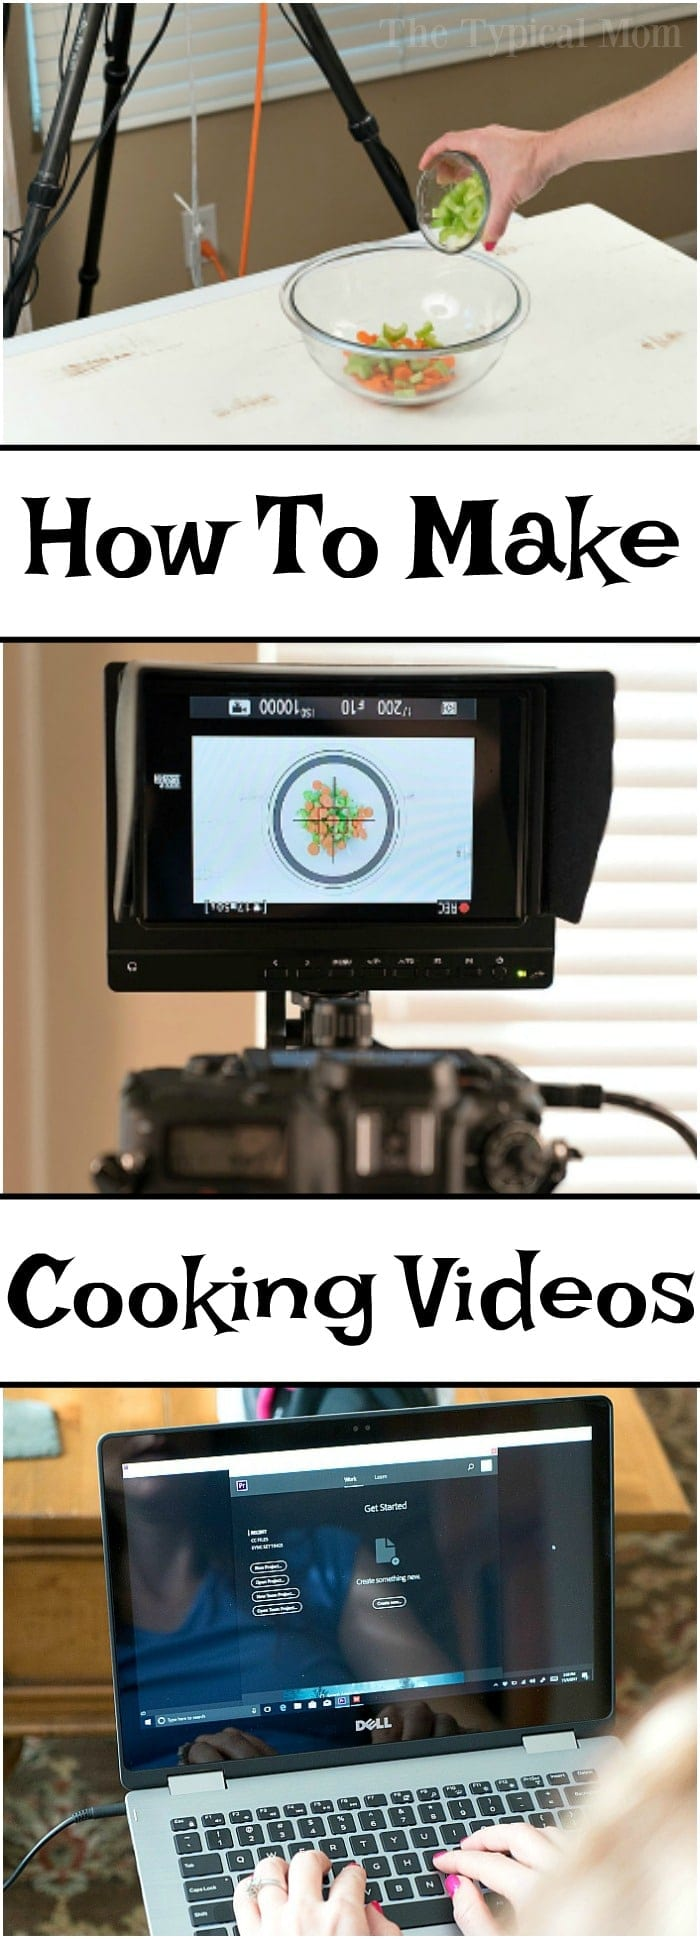 This is how to make quick cooking videos at home! Tutorial on what lighting to use and how to edit your videos on your computer too. Easy step by step.